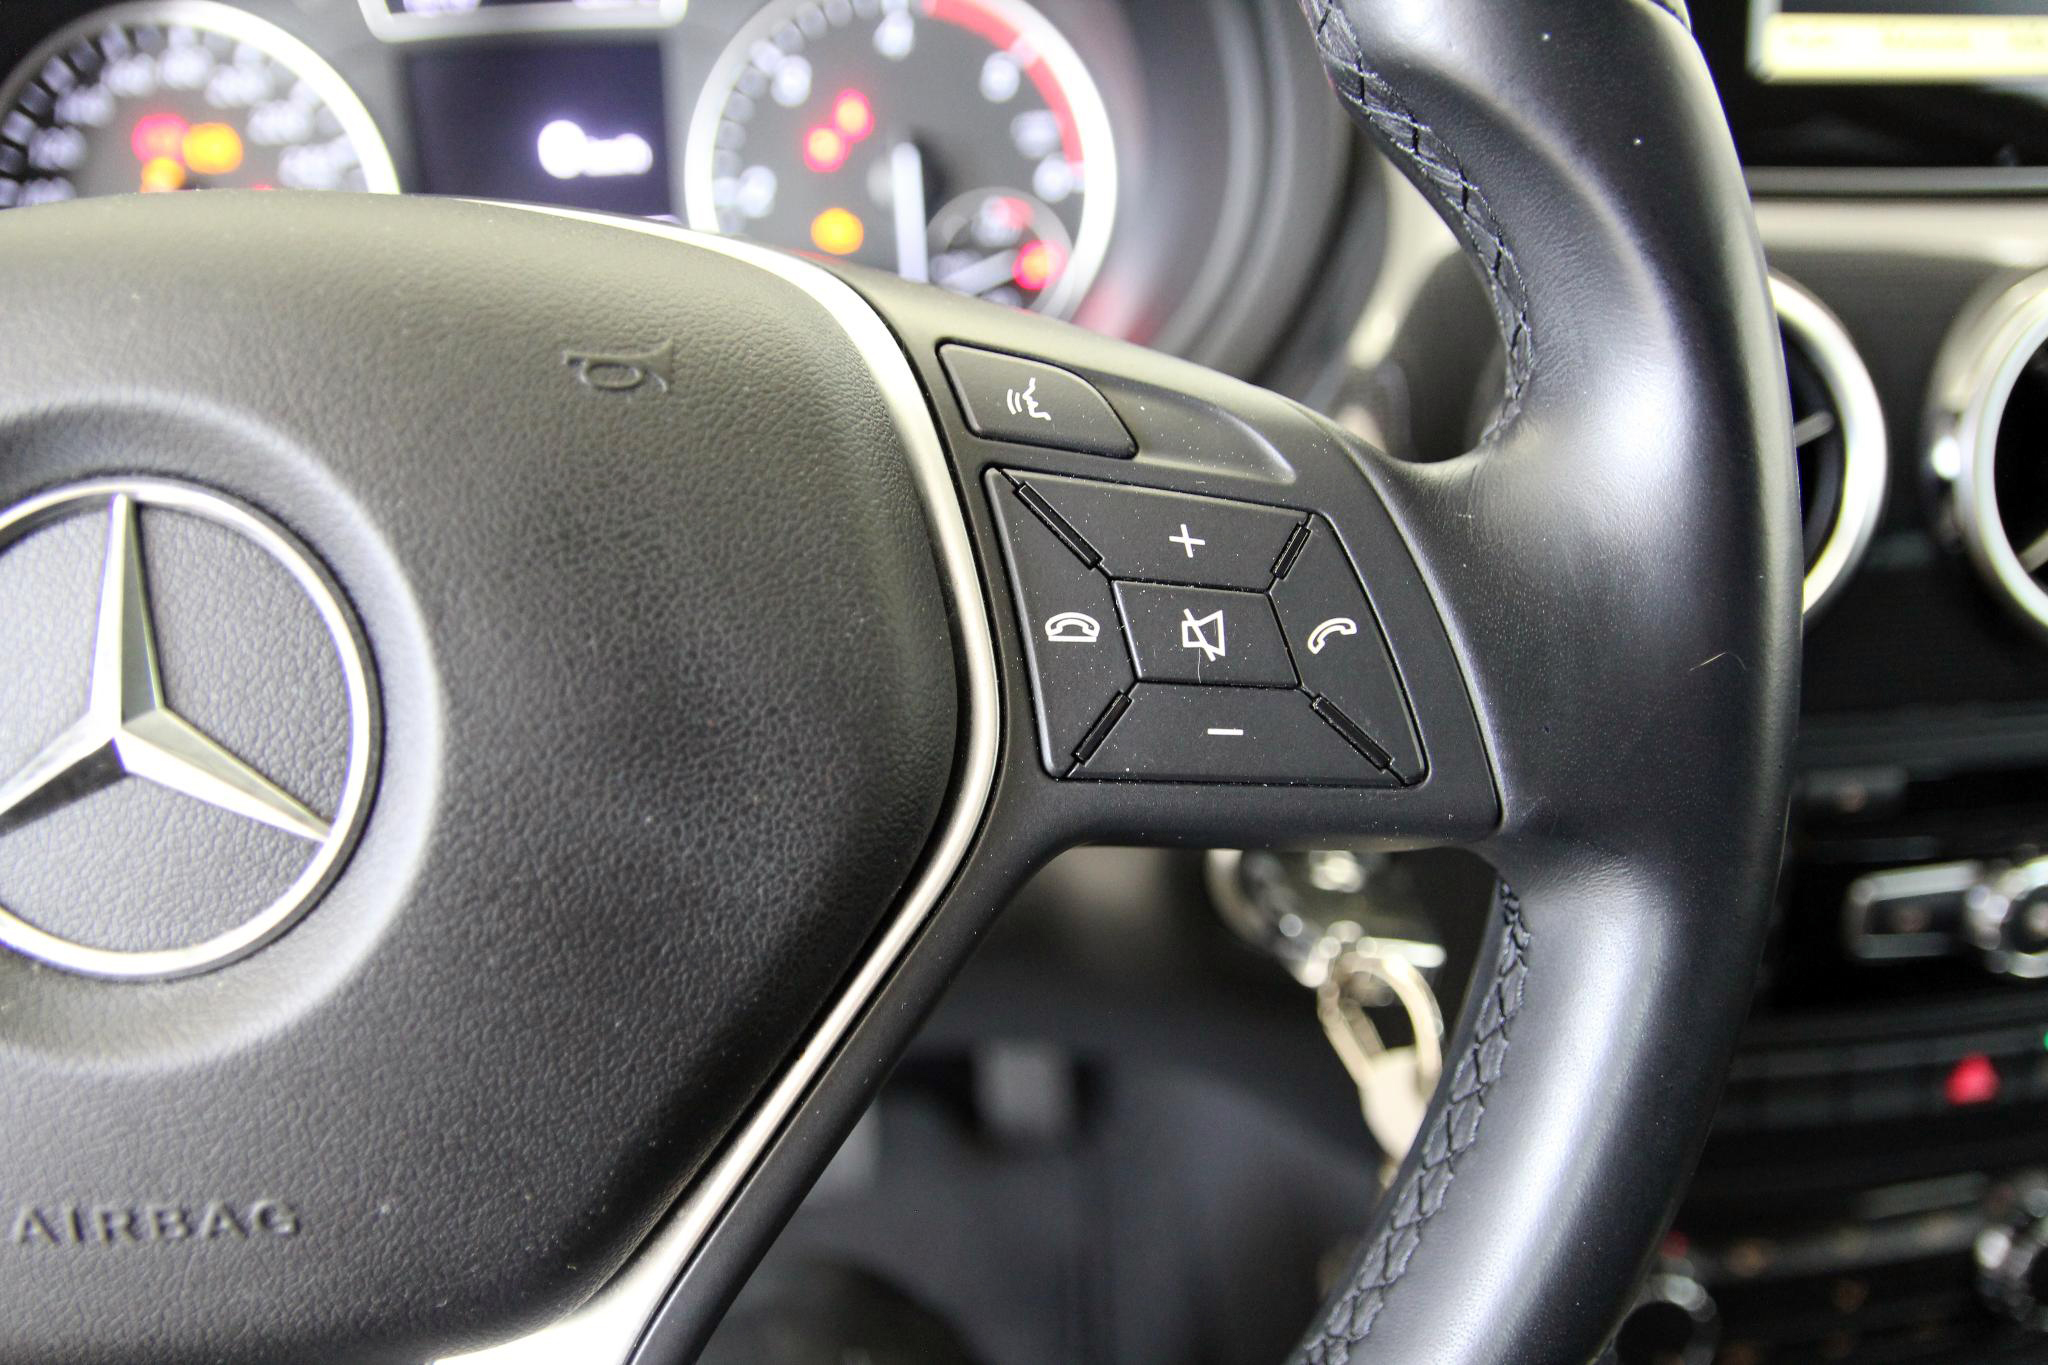 Mercedes-Benz Clase B CLASE B 180 CDI BLUE EFFICIENCY 5P imagen 22